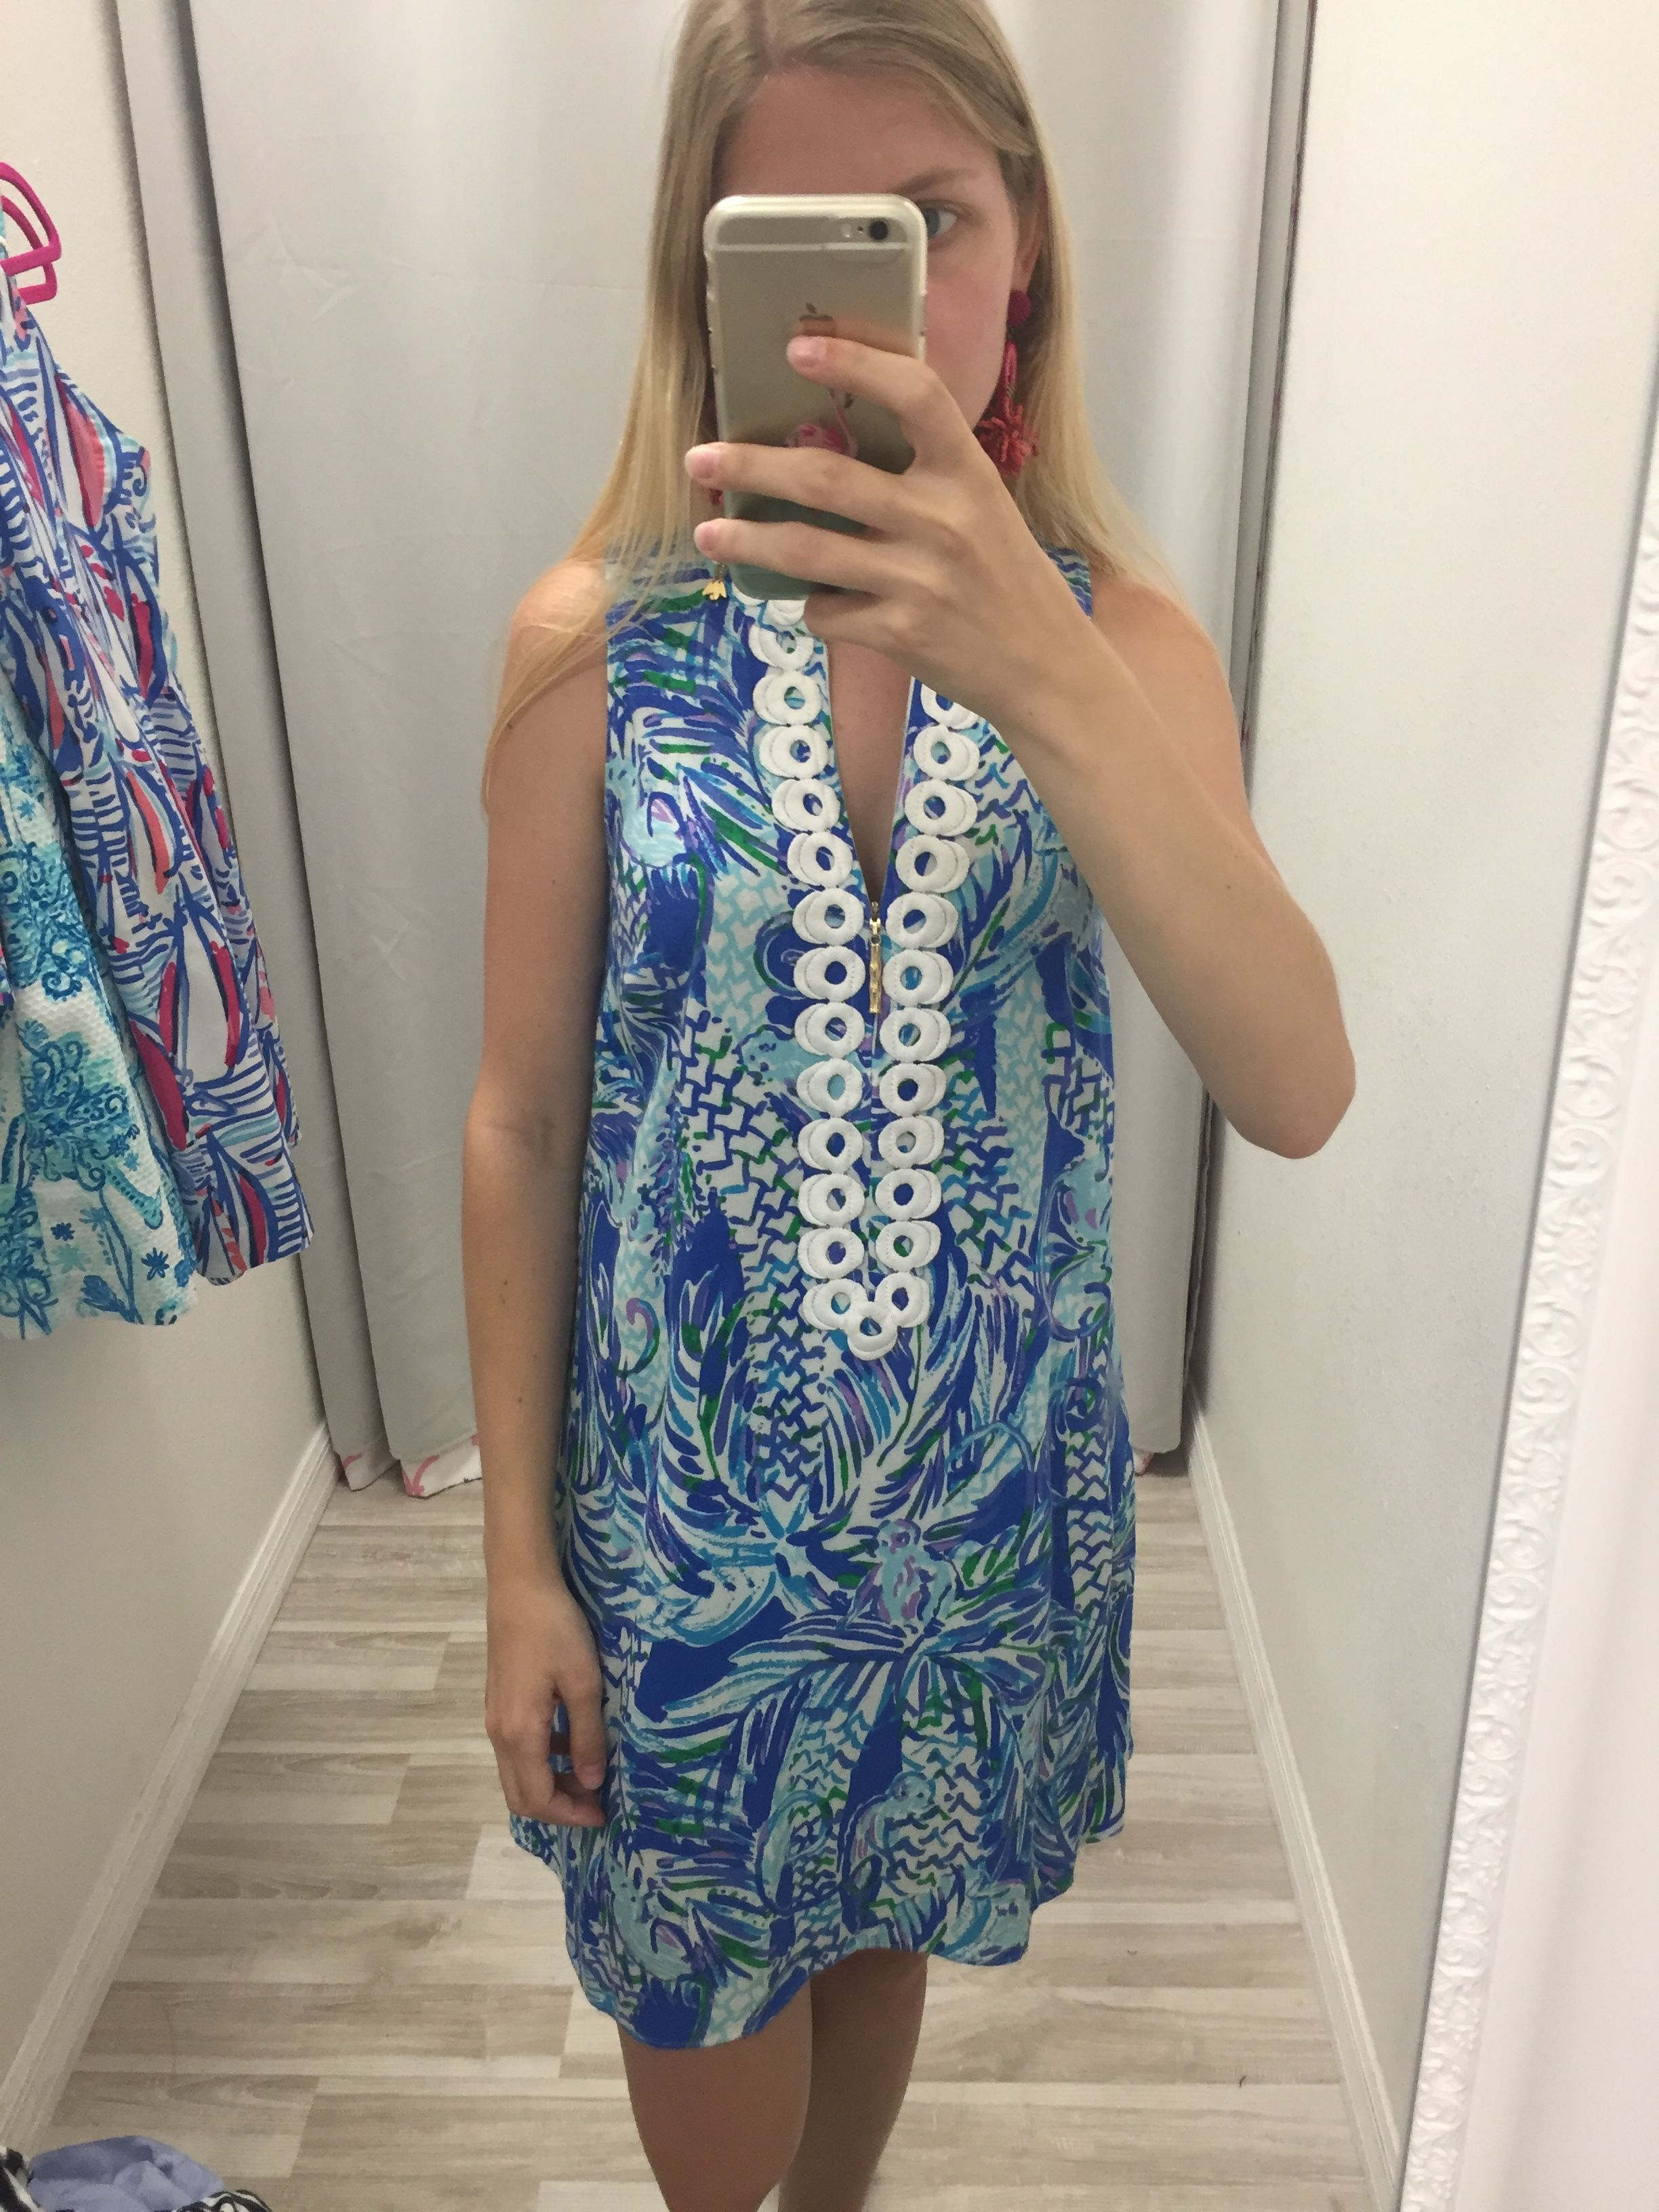 Resale Lilly Pulitzer shop located in college park and